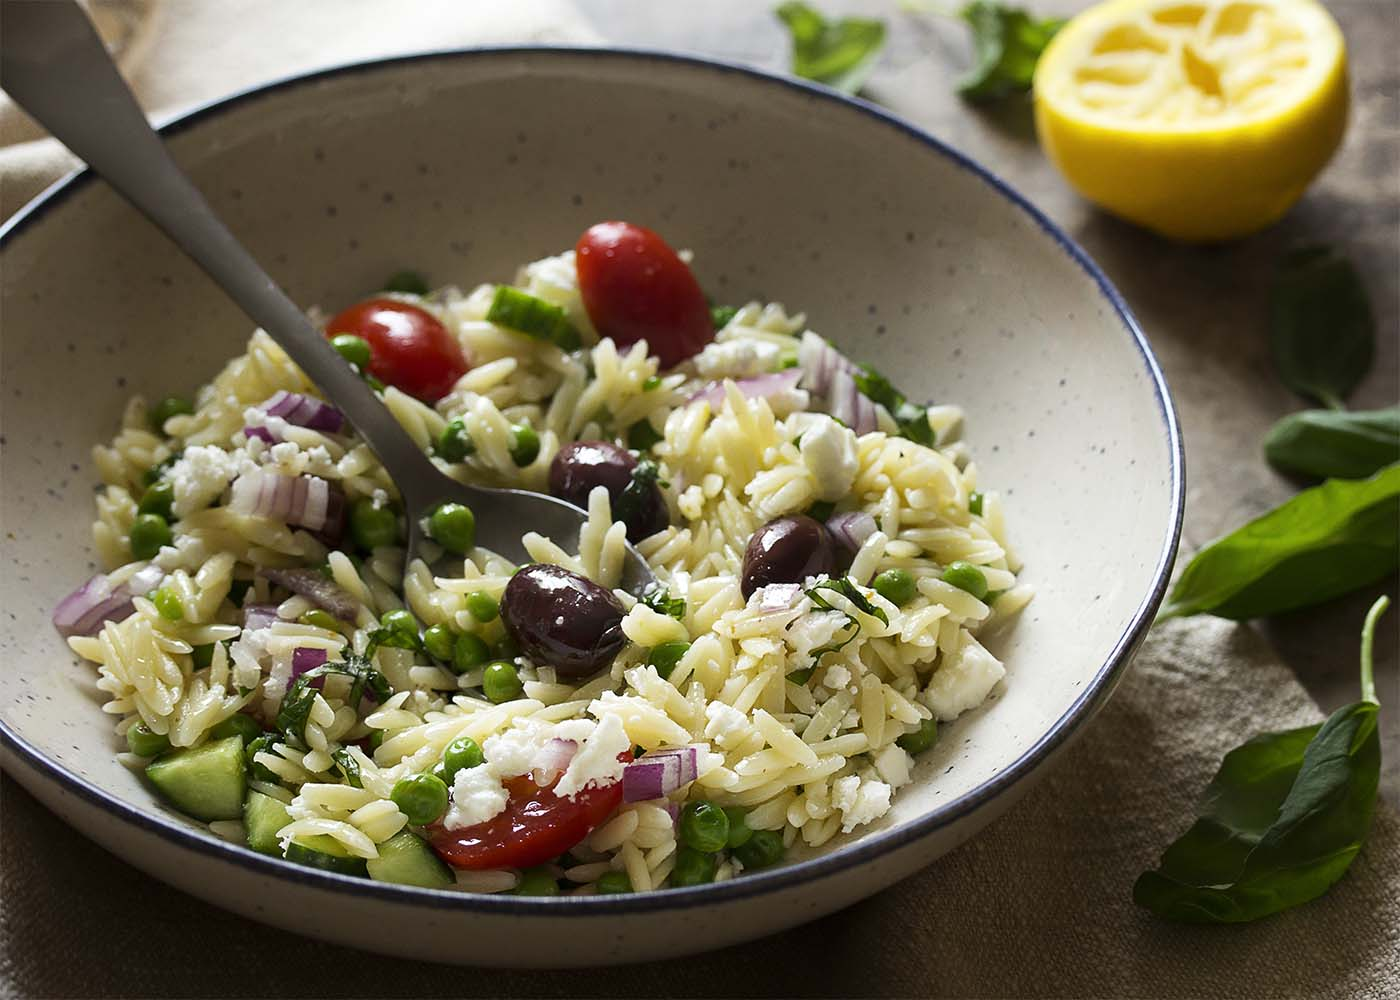 A wide bowl of orzo salad with a spoon all ready to take a bite.